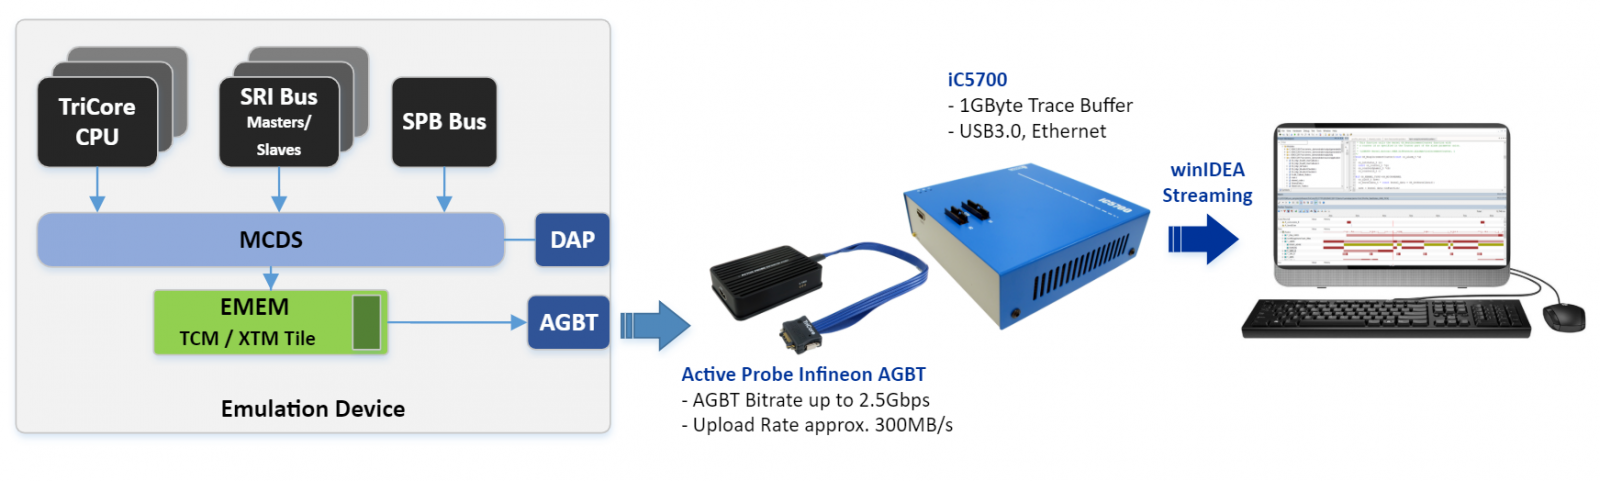 Sample iSYSTEM BlueBox Configuration based on iC5700 + Infineon AGBT Active Probe